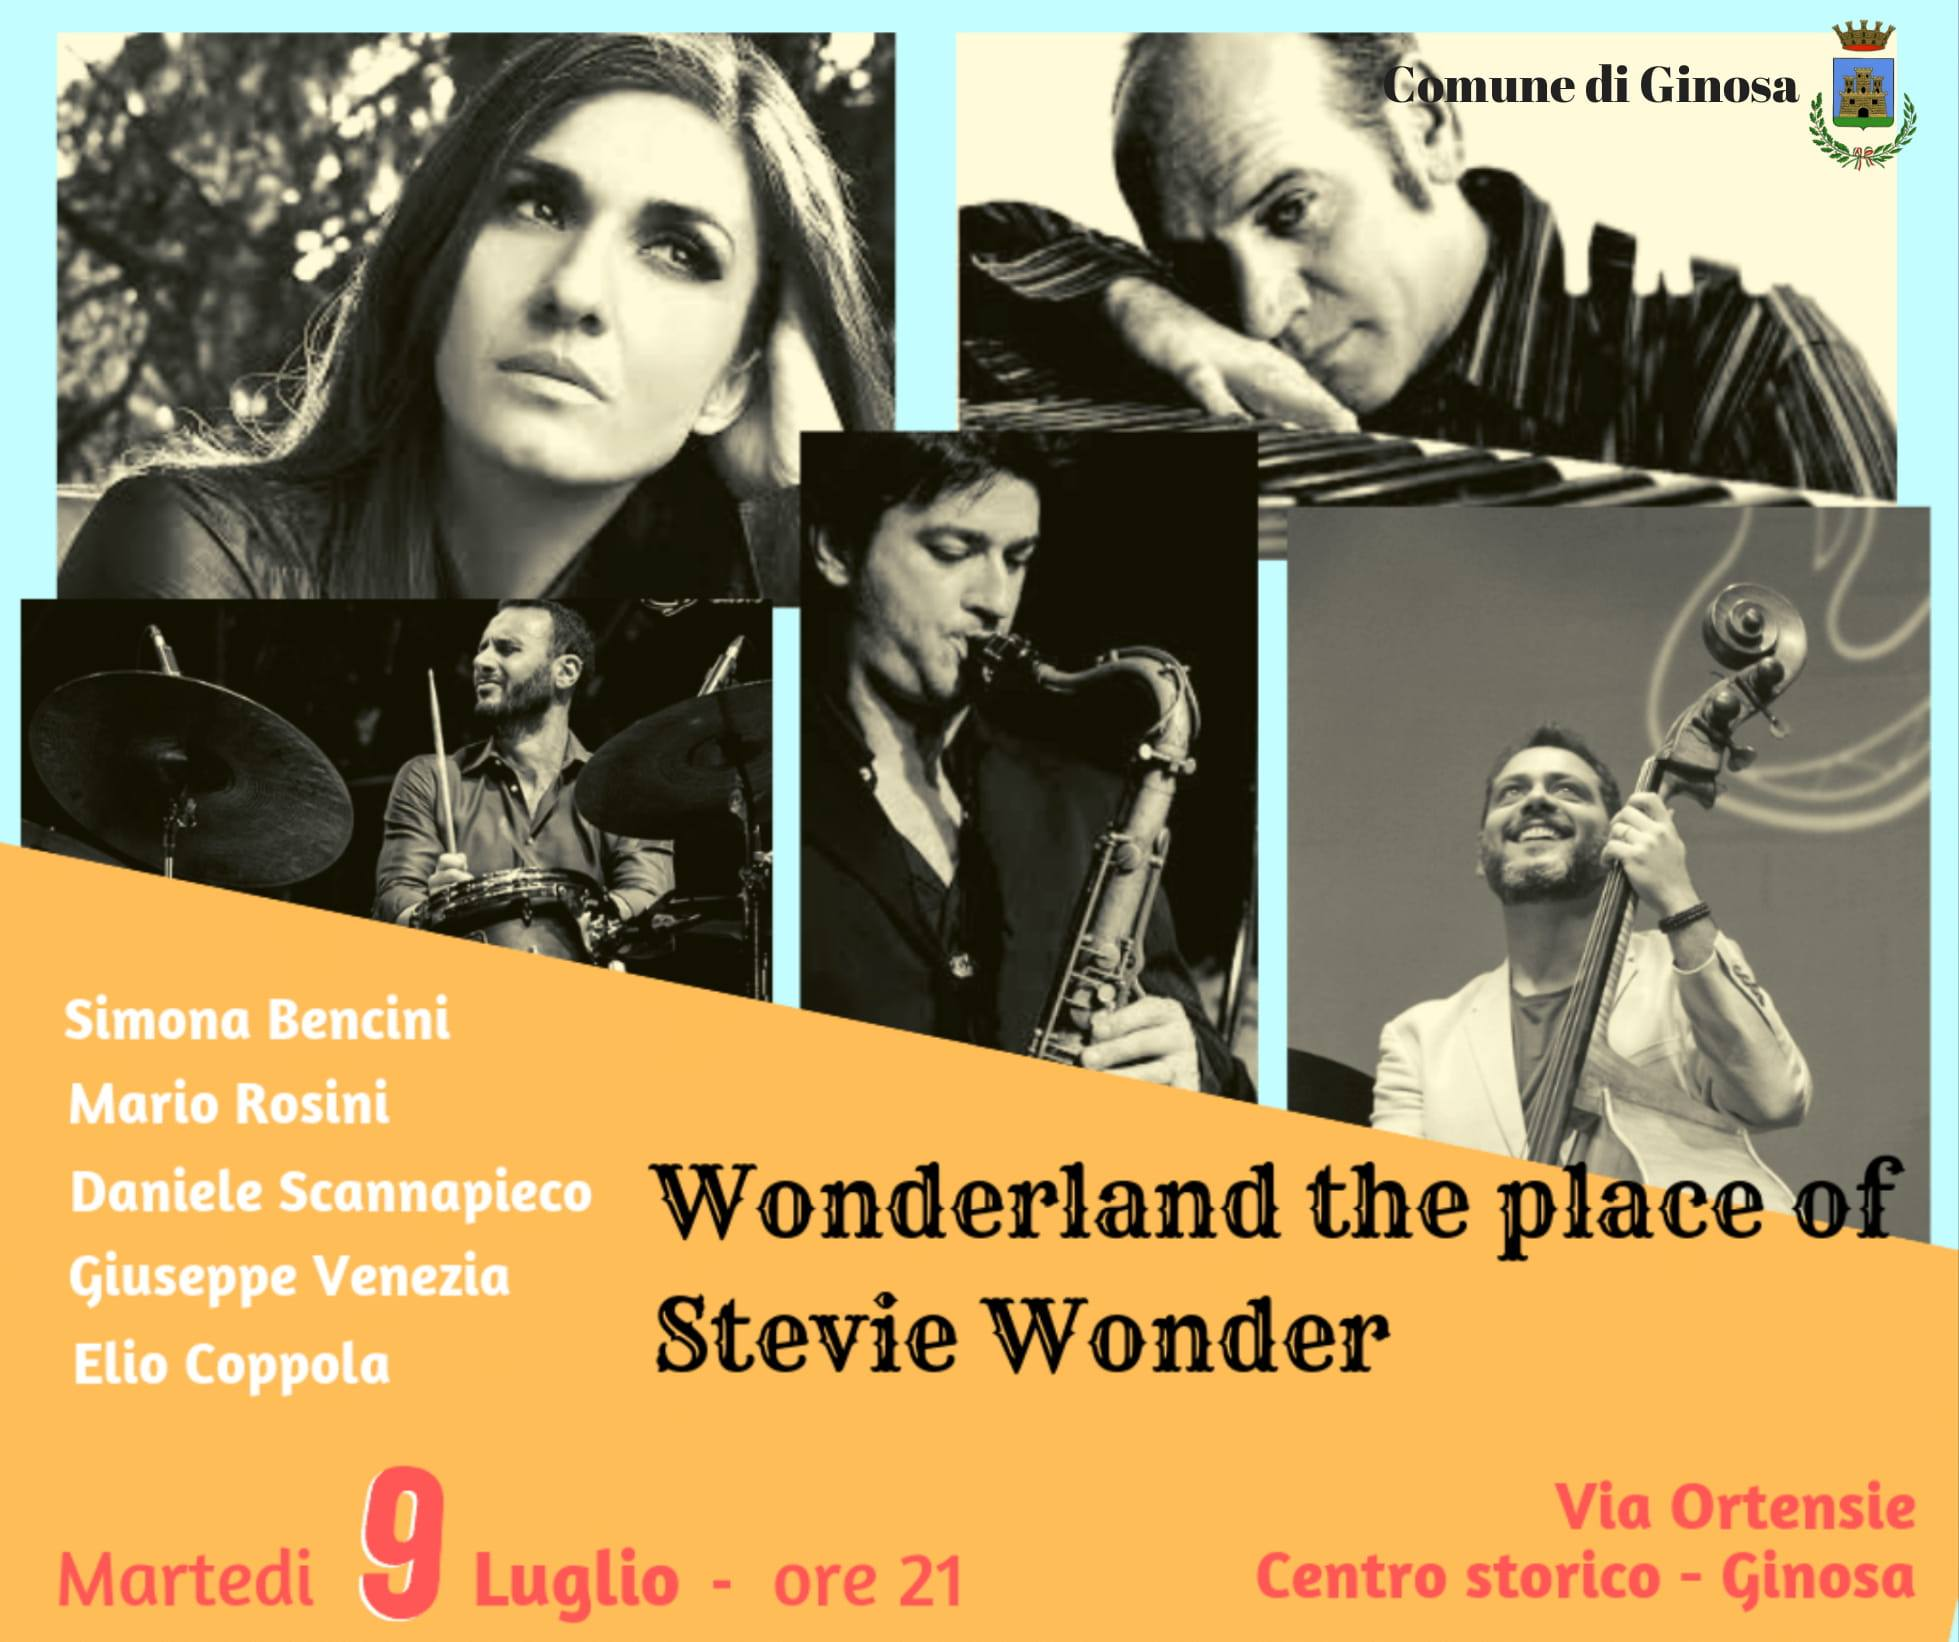 Wonderland the Place of Stevie Wonder: tributo a Stevie Wonder a Ginosa